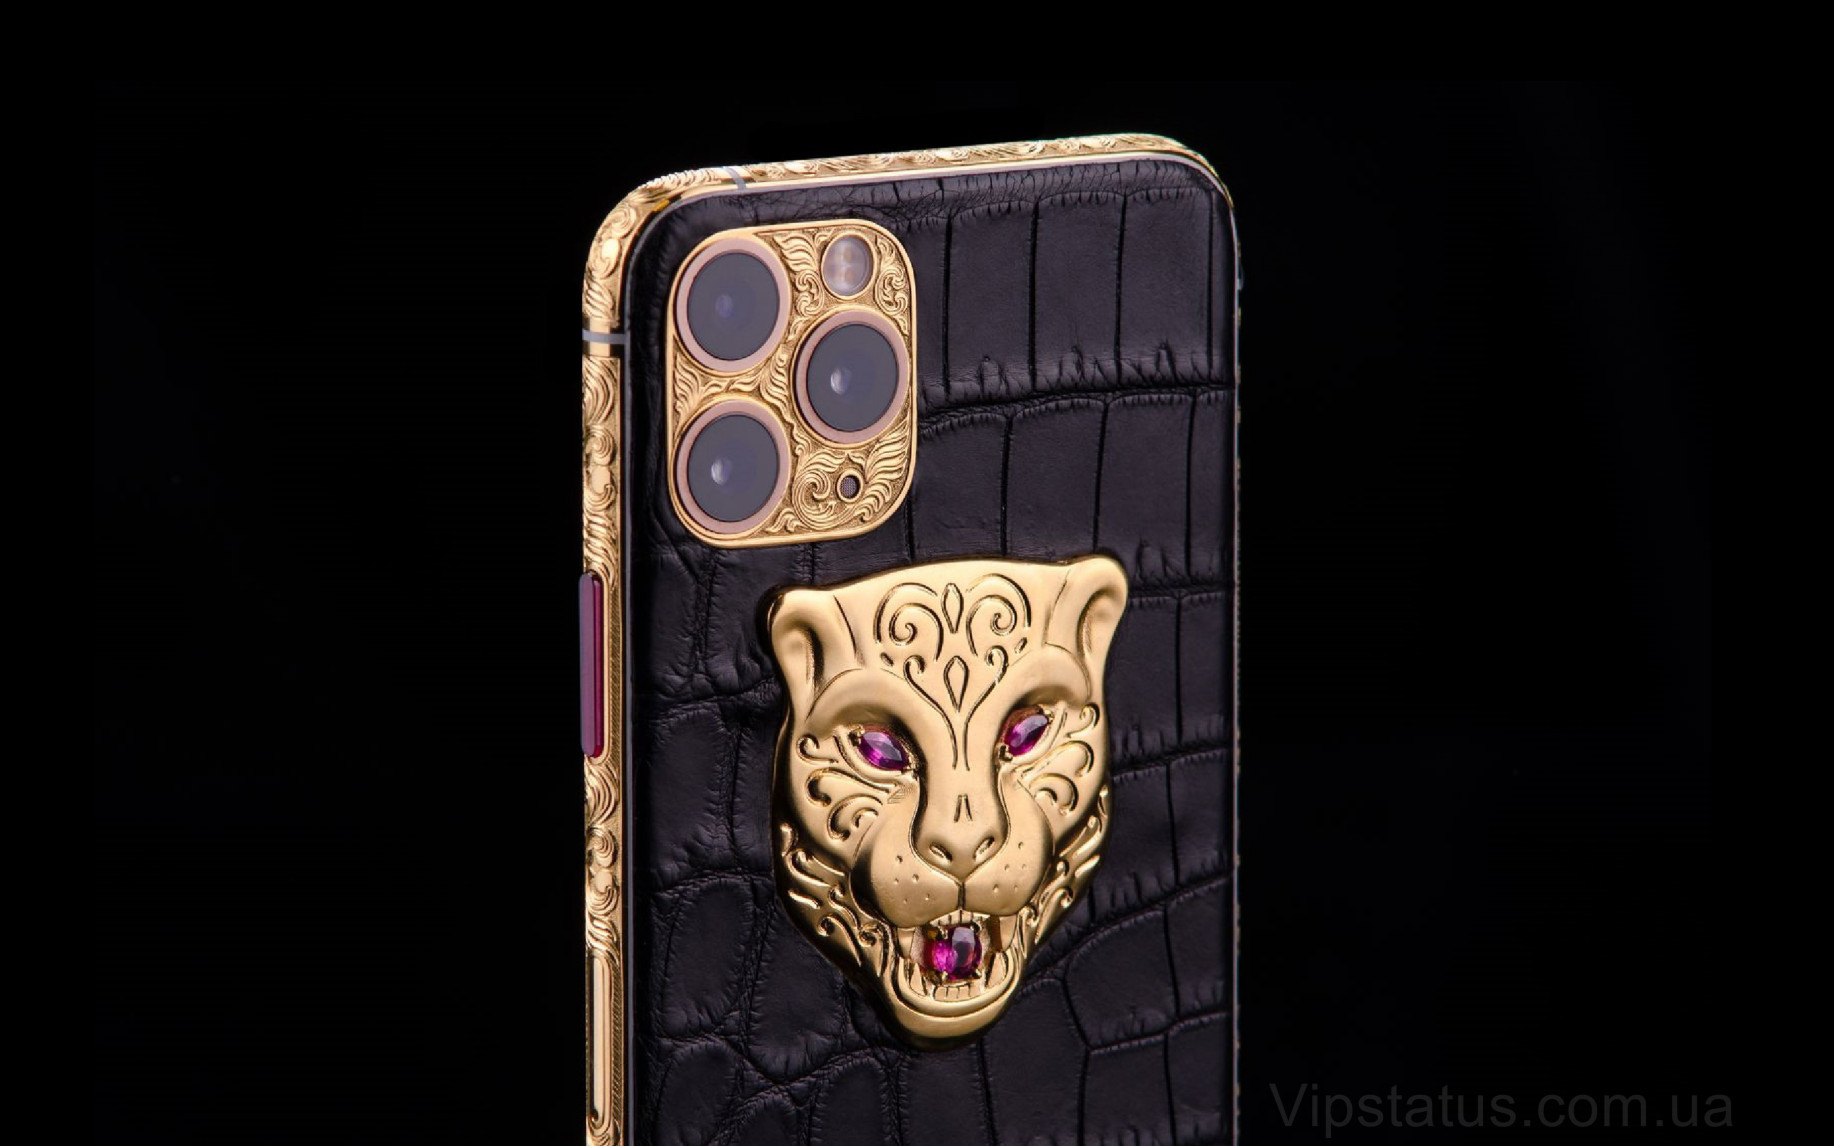 Elite Gucci Tiger IPHONE 11 PRO 512 GB Gucci Tiger IPHONE 11 PRO 512 GB image 2